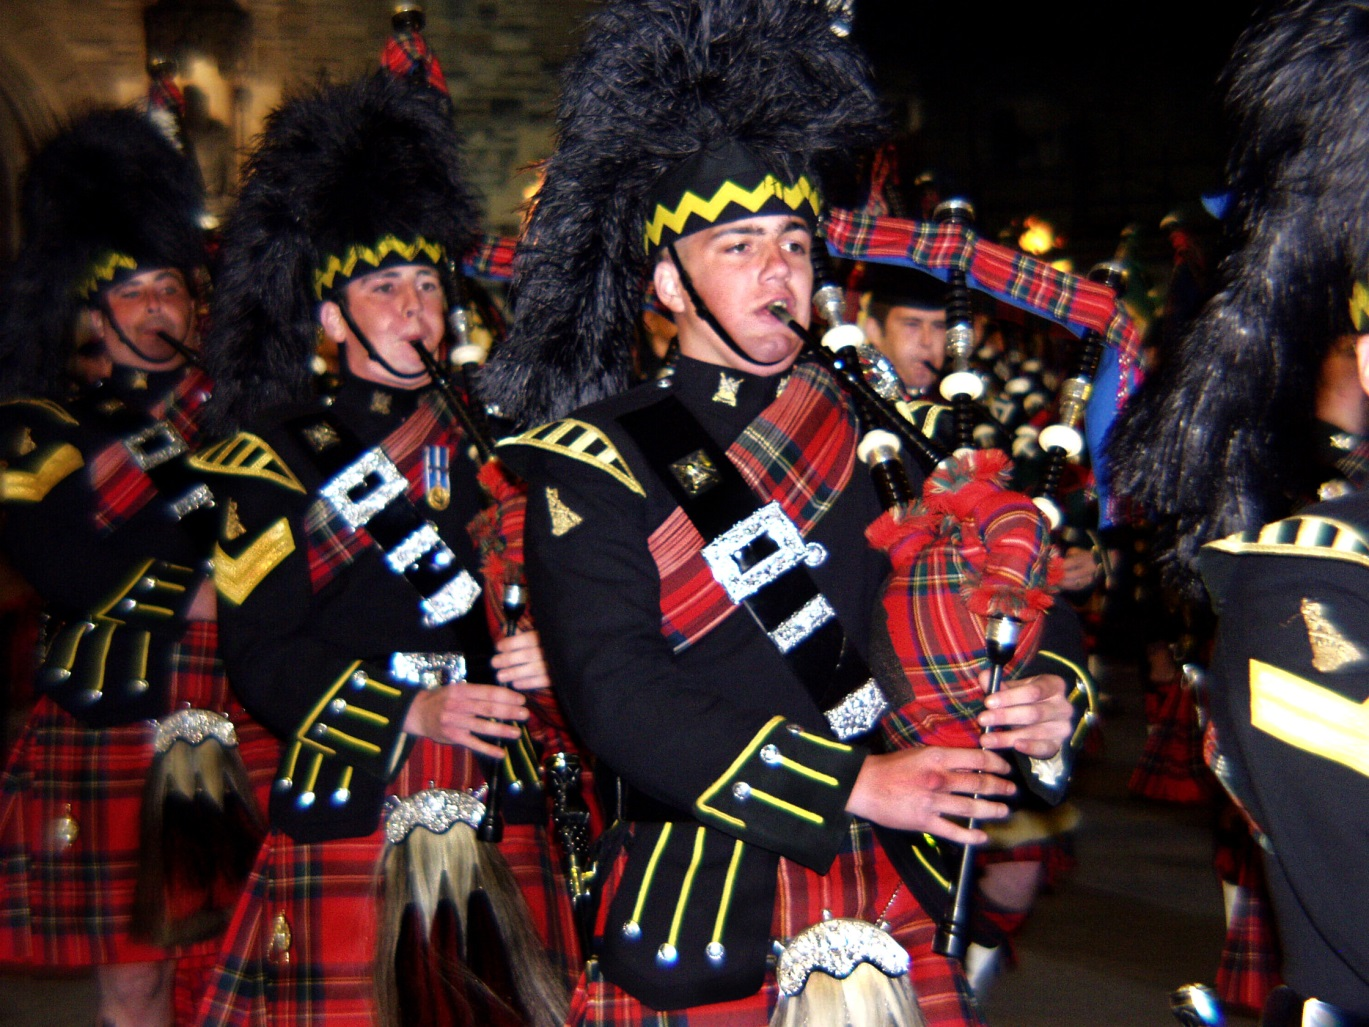 C:\Users\Public\Pictures\Sample Pictures\royal-scots-dragoons-with-bagpipes-marching.jpg